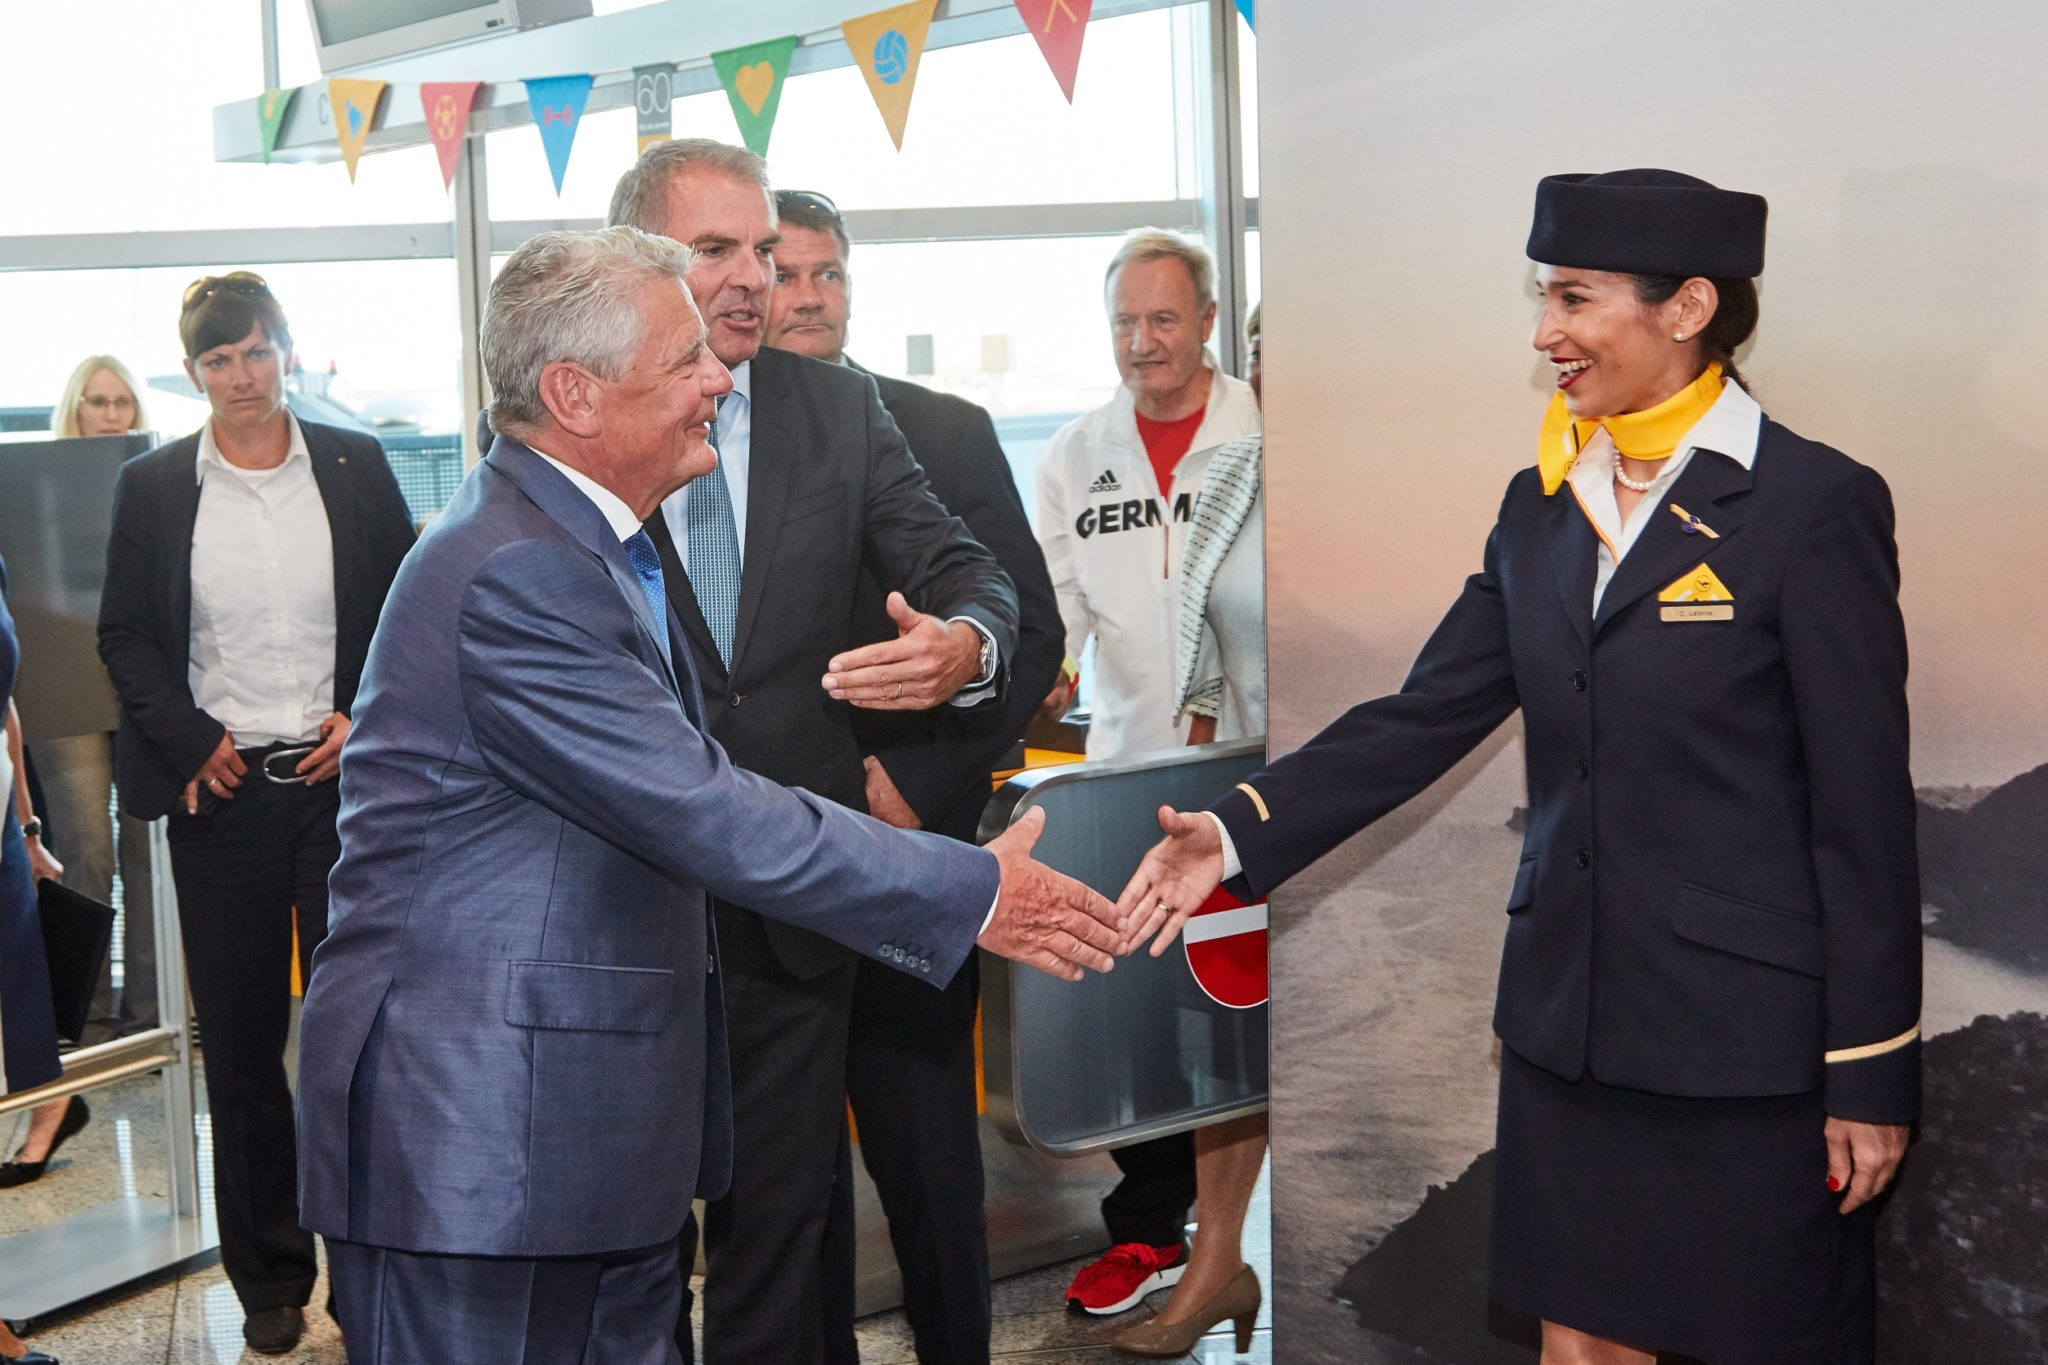 Germany — and its national carrier — threw a big sendoff for the Paralympians. Image: Lufthansa